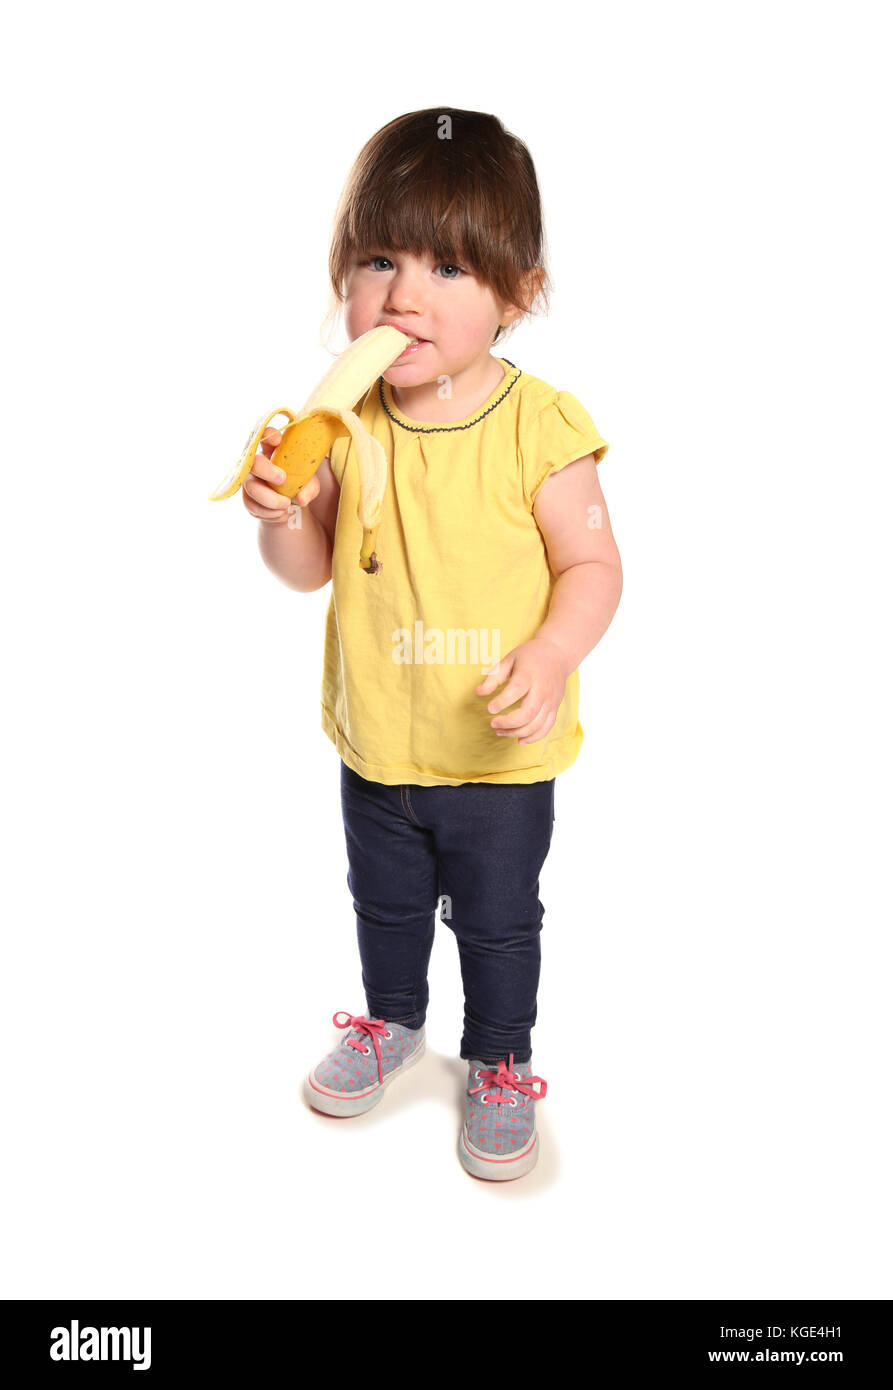 2 year old toddler eating a banana in a studio - Stock Image